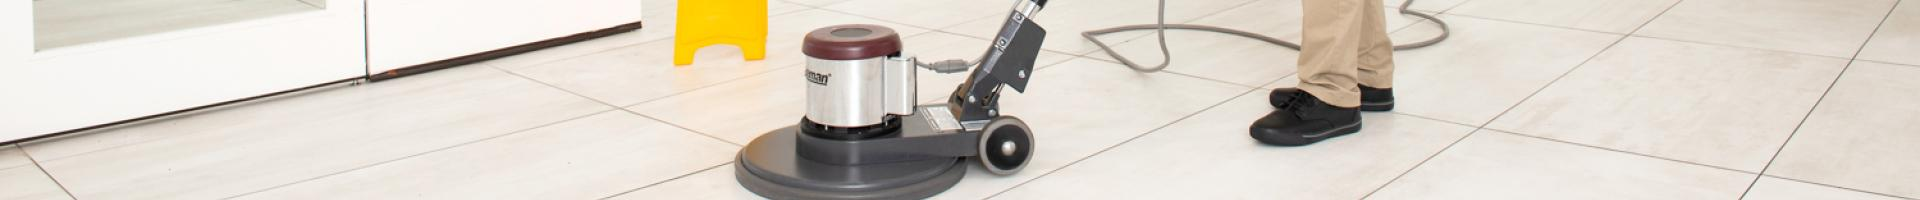 Commercial Hard Floor Care